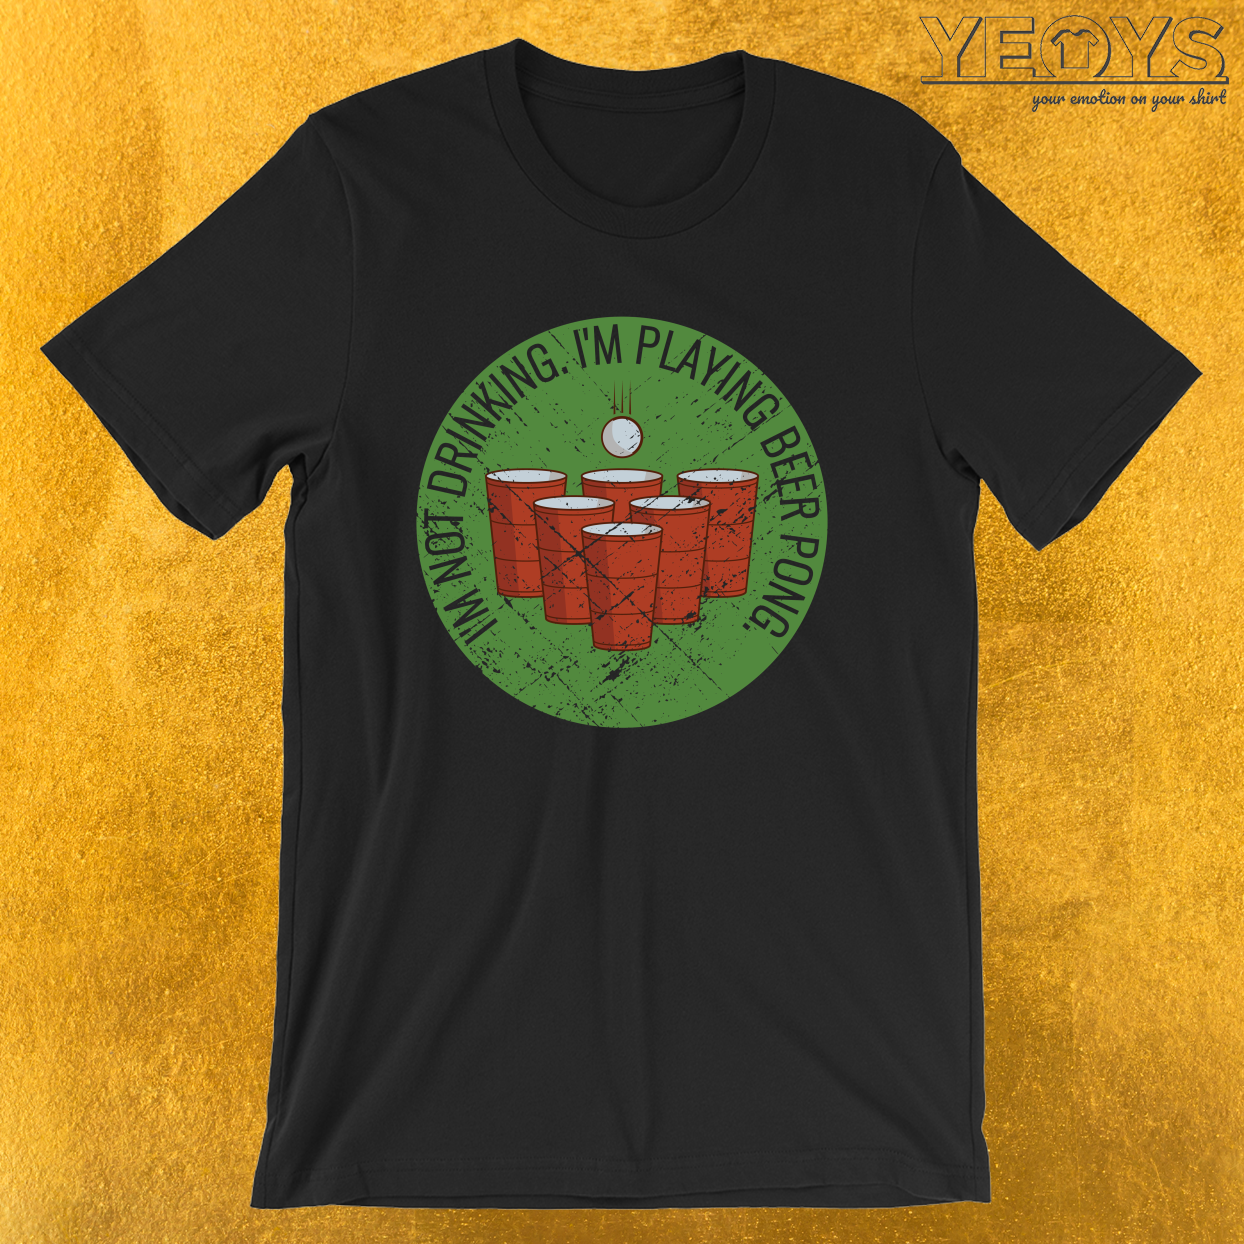 I'm Not Drinking I'm Playing Beer Pong – Funny Beer Pong Tee